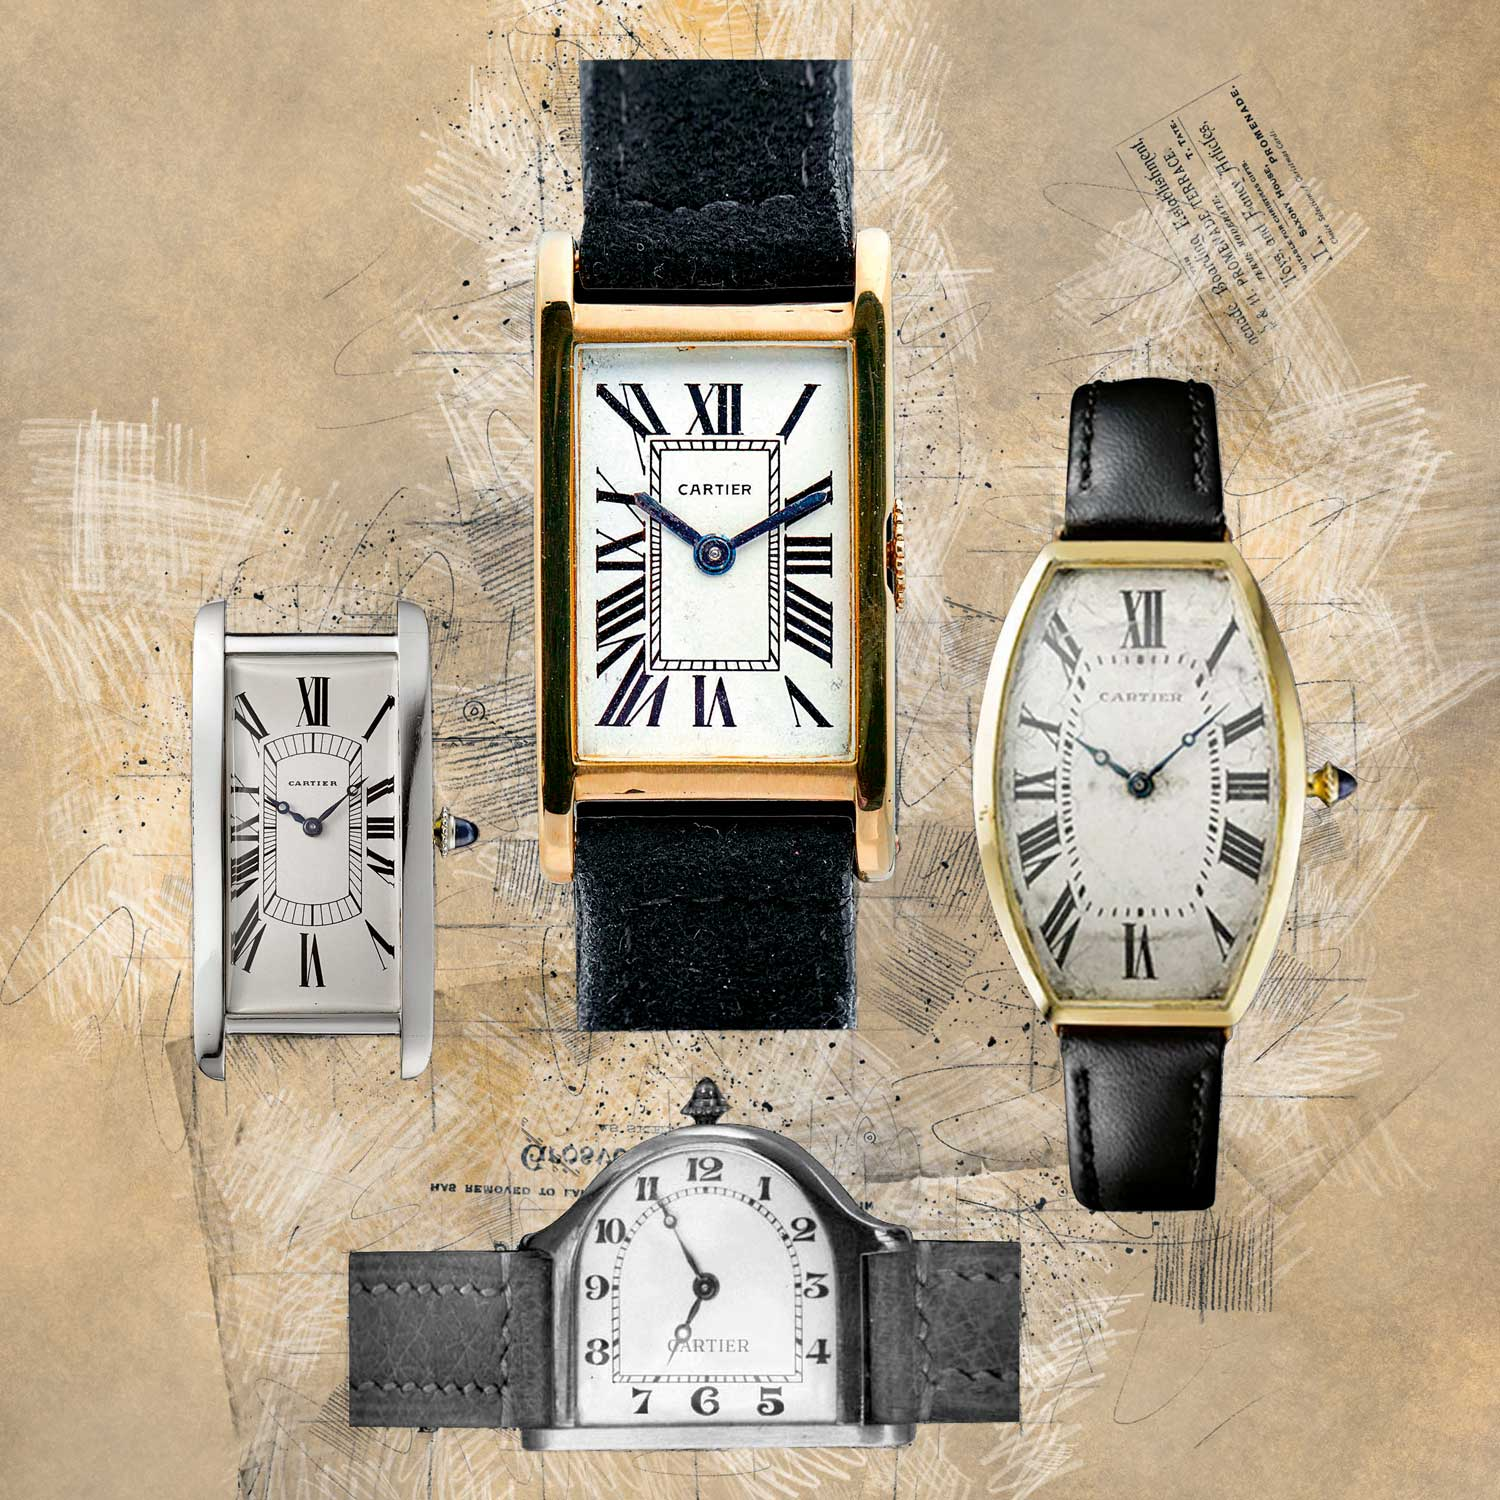 Louis Cartier's unusual and elaborate case designs — right from Tonneau to Tortue — sealed the status of the wristwatch as one of the most defining accessories in the postwar era. Clockwise from top: An example of the Cartier Tank from the 1930s; Cartier Tonneau from 1908; Cartier Cloche from 1922; Tank Cintrée from 1924